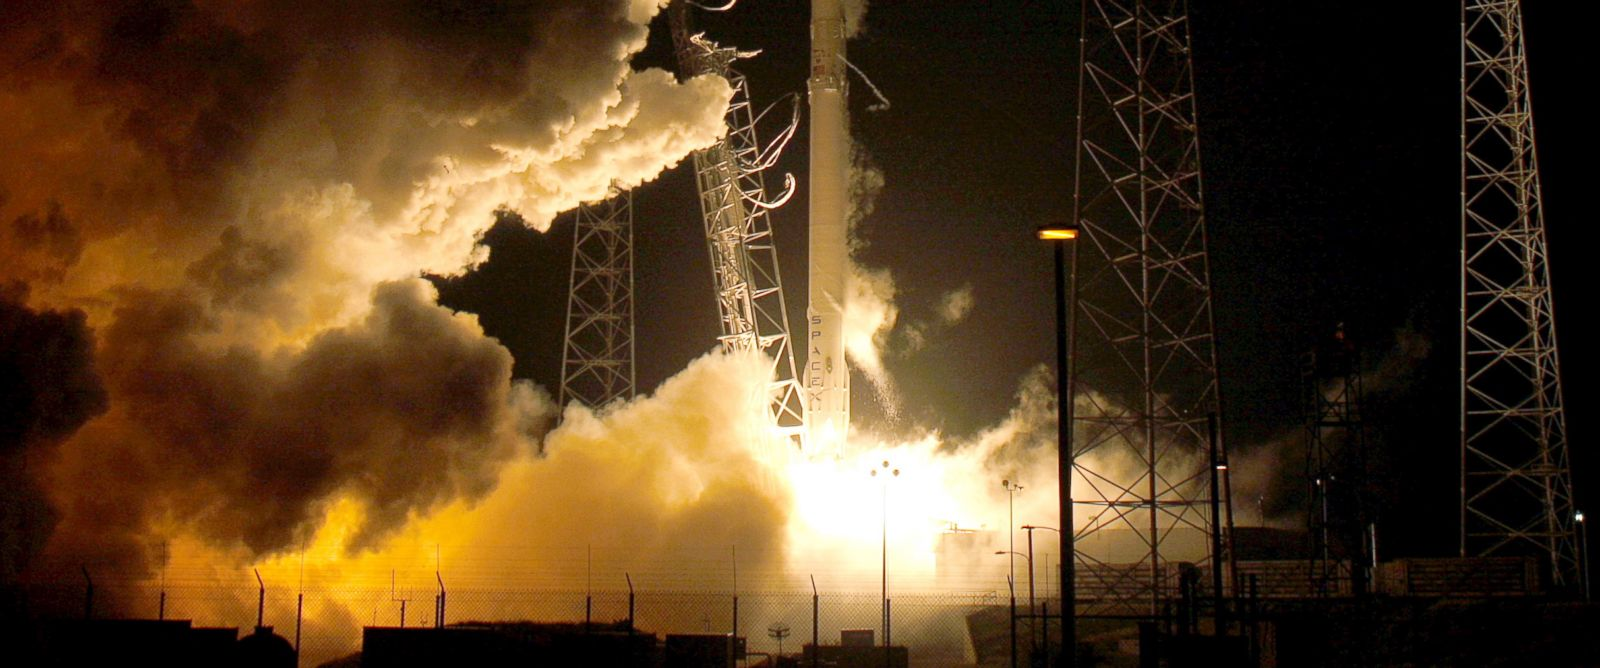 PHOTO: A remodeled version of the SpaceX Falcon 9 rocket lifts off at the Cape Canaveral Air Force Station on the launchers first mission since a June failure in Cape Canaveral, Florida, Dec. 21, 2015.